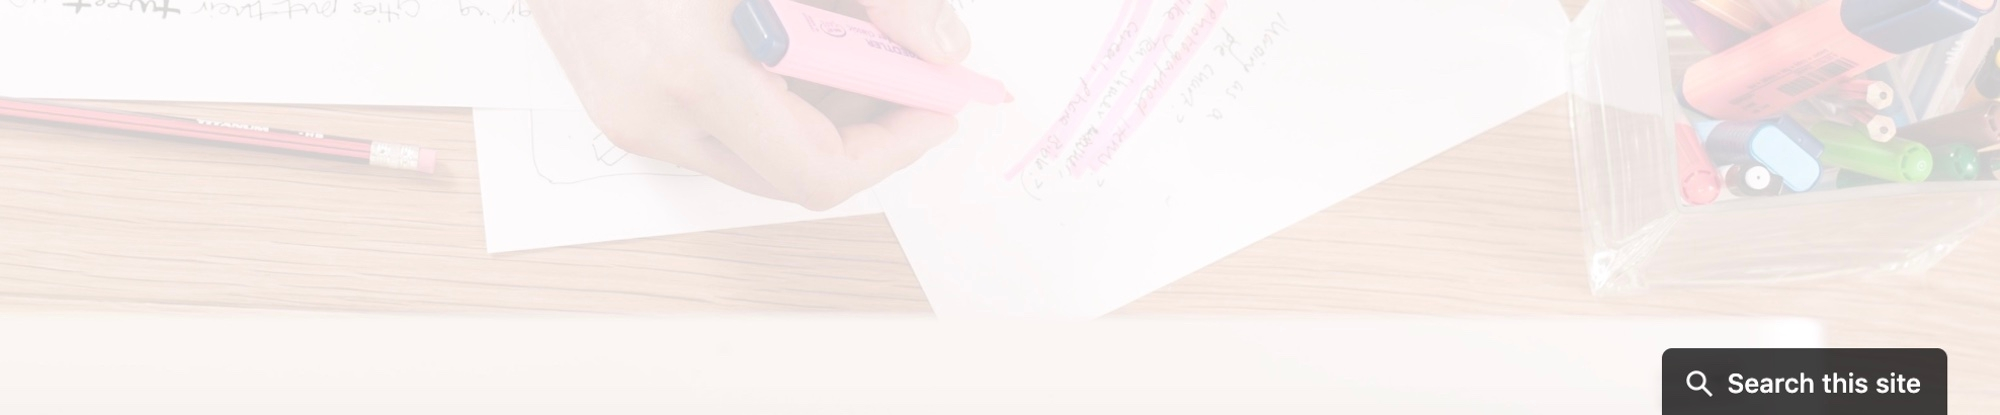 site-search-intro-blog-banner.jpg